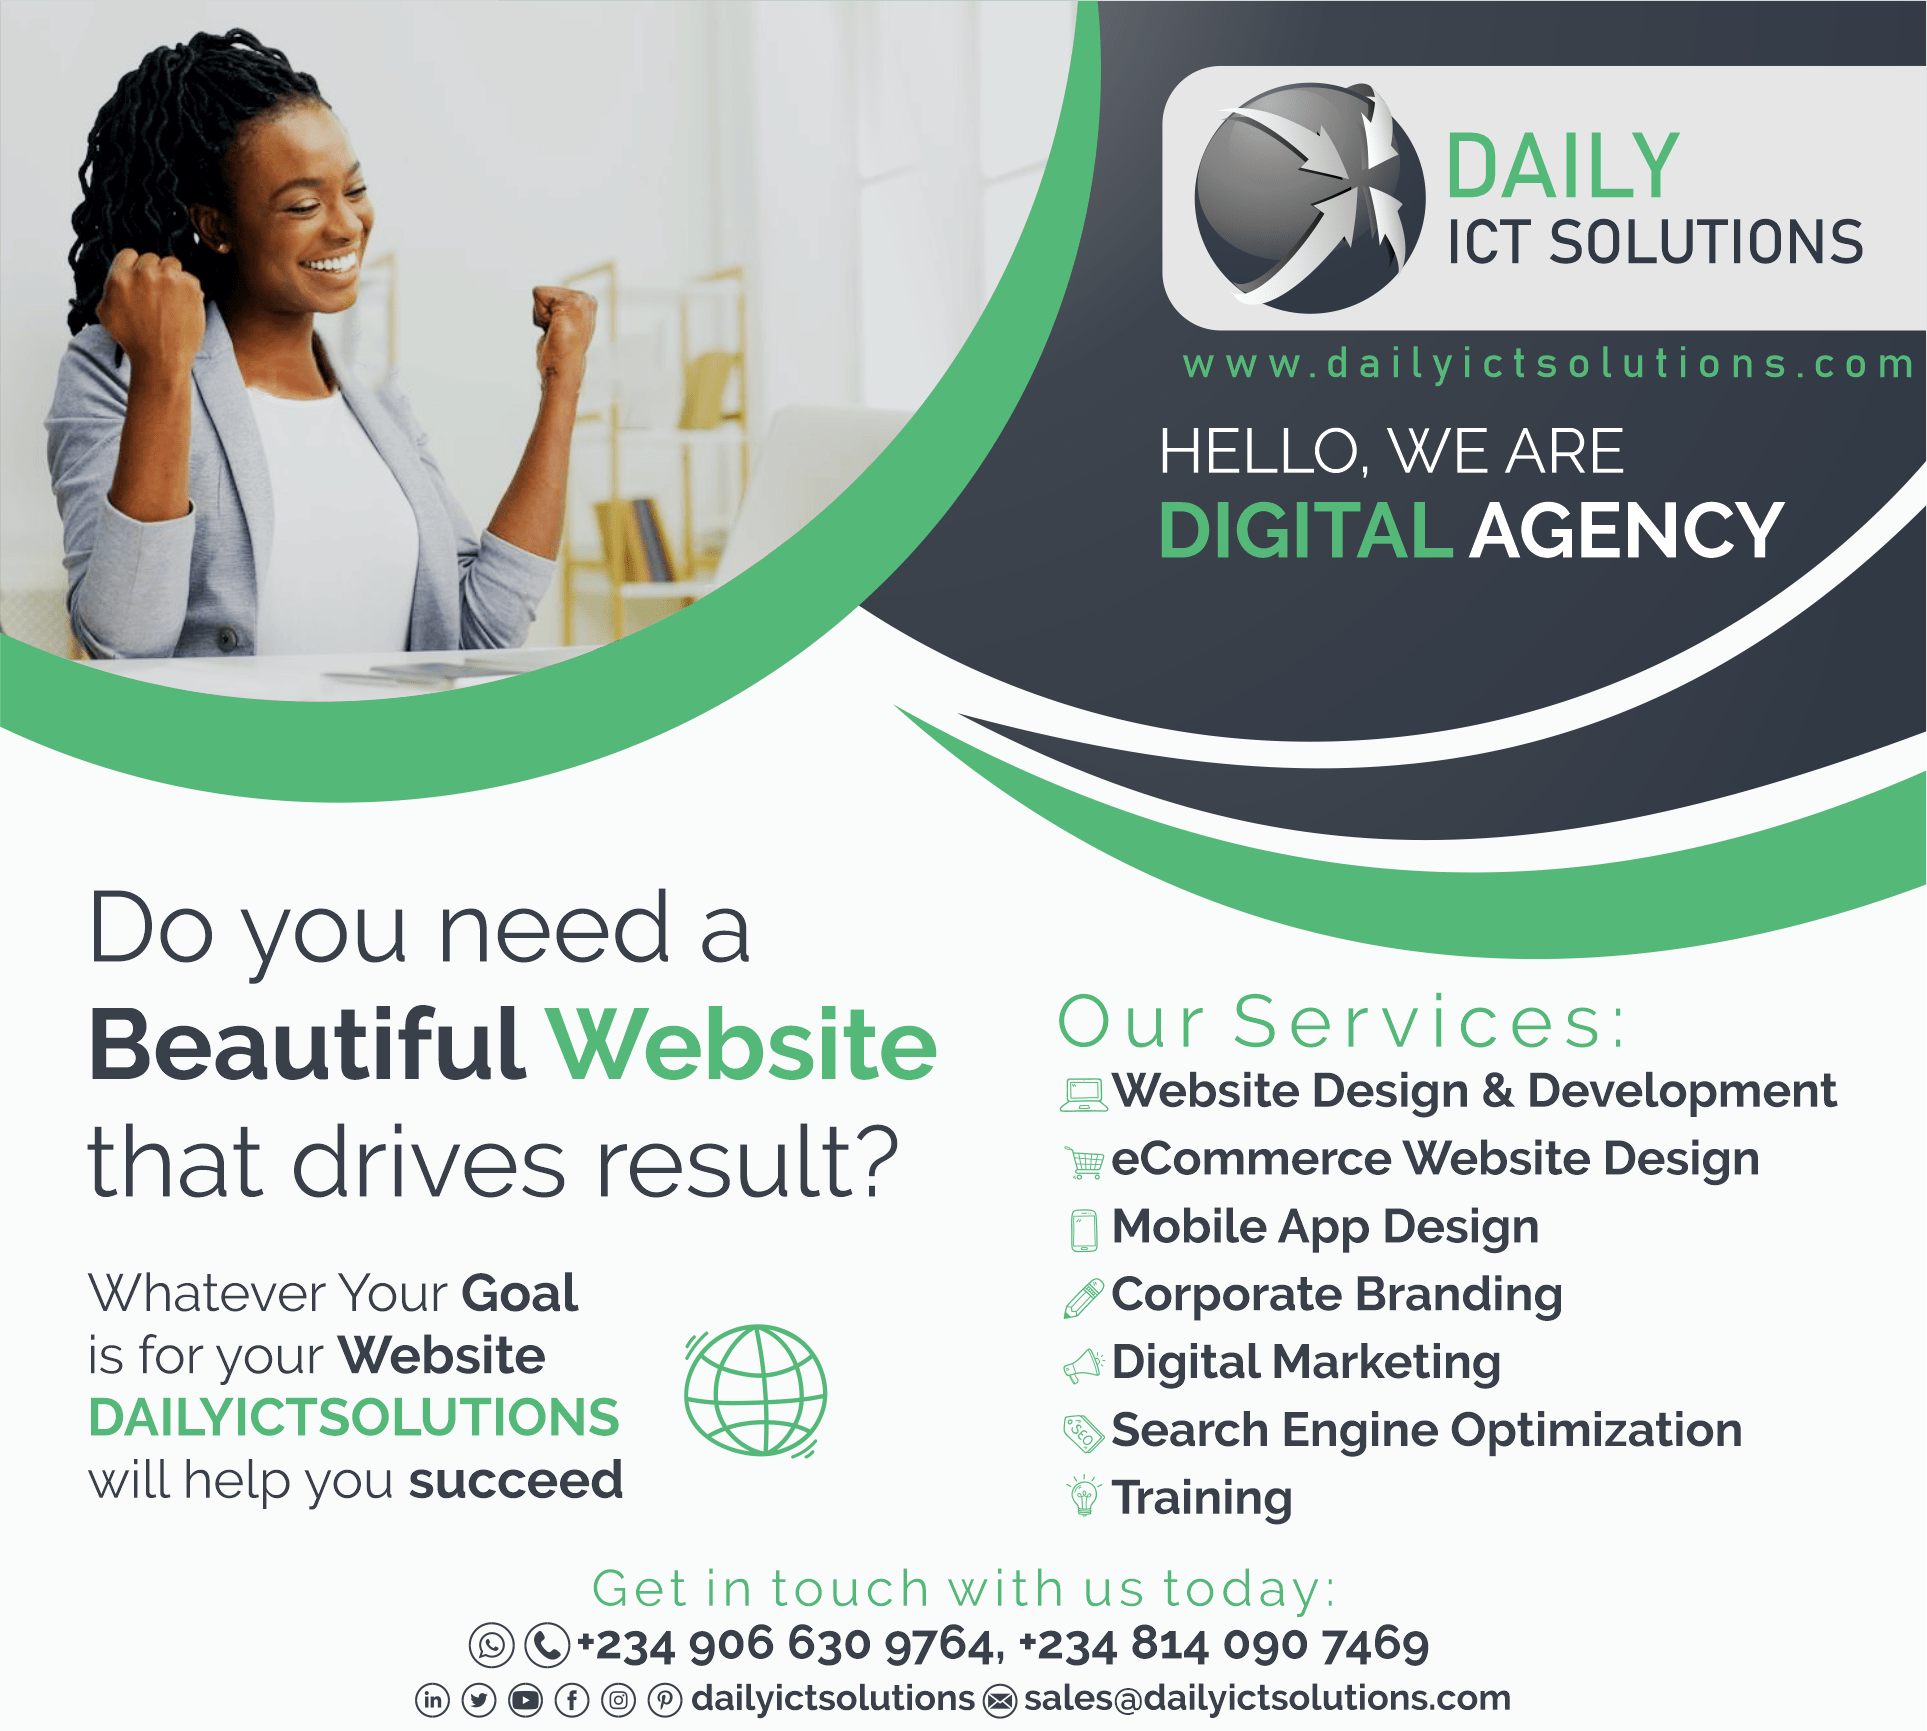 DAILYICTSOLUTIONS E-Flier 1